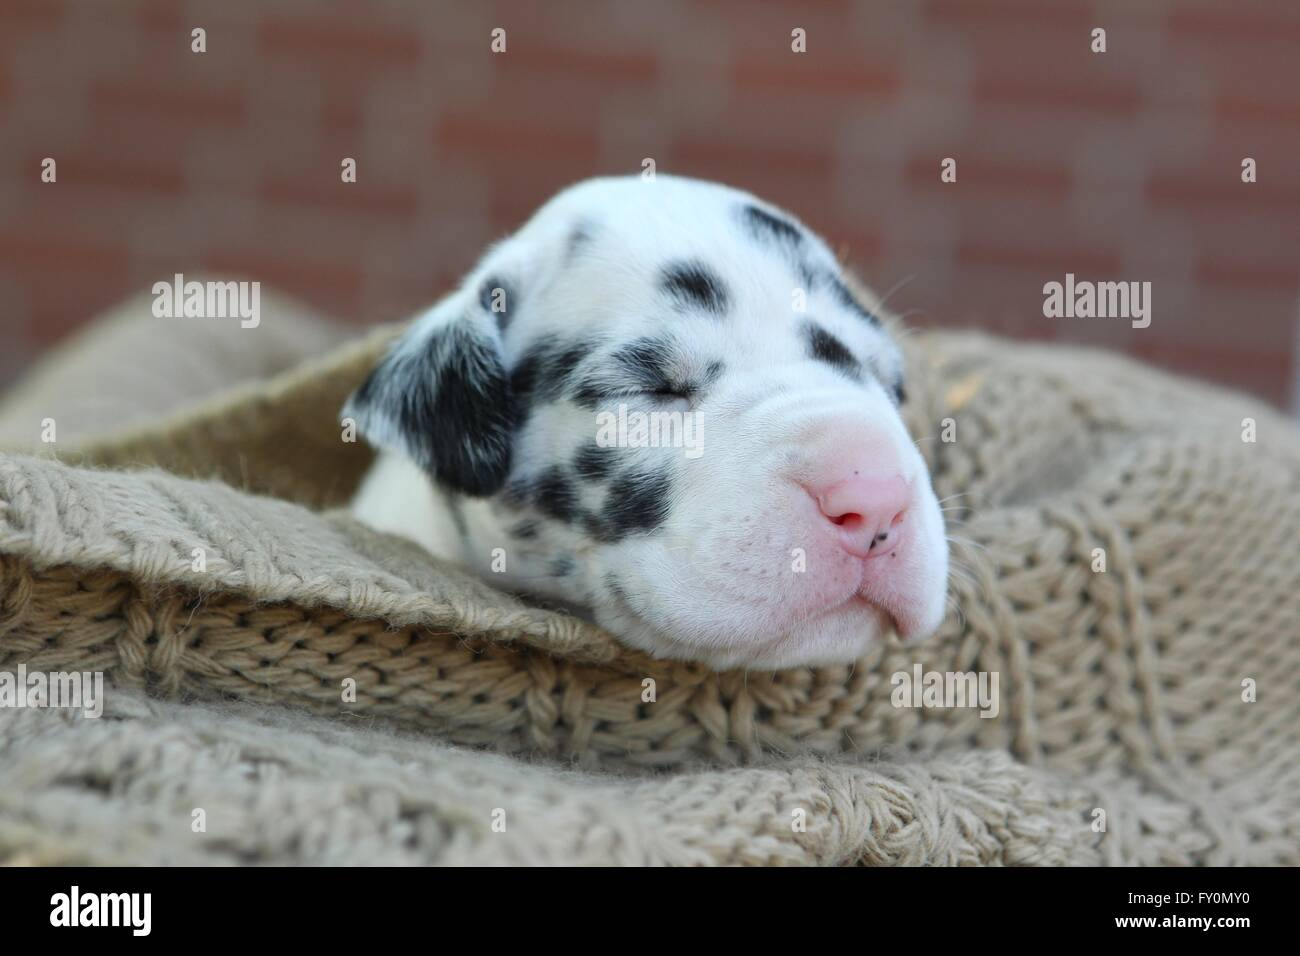 Great Dane Puppy - Stock Image